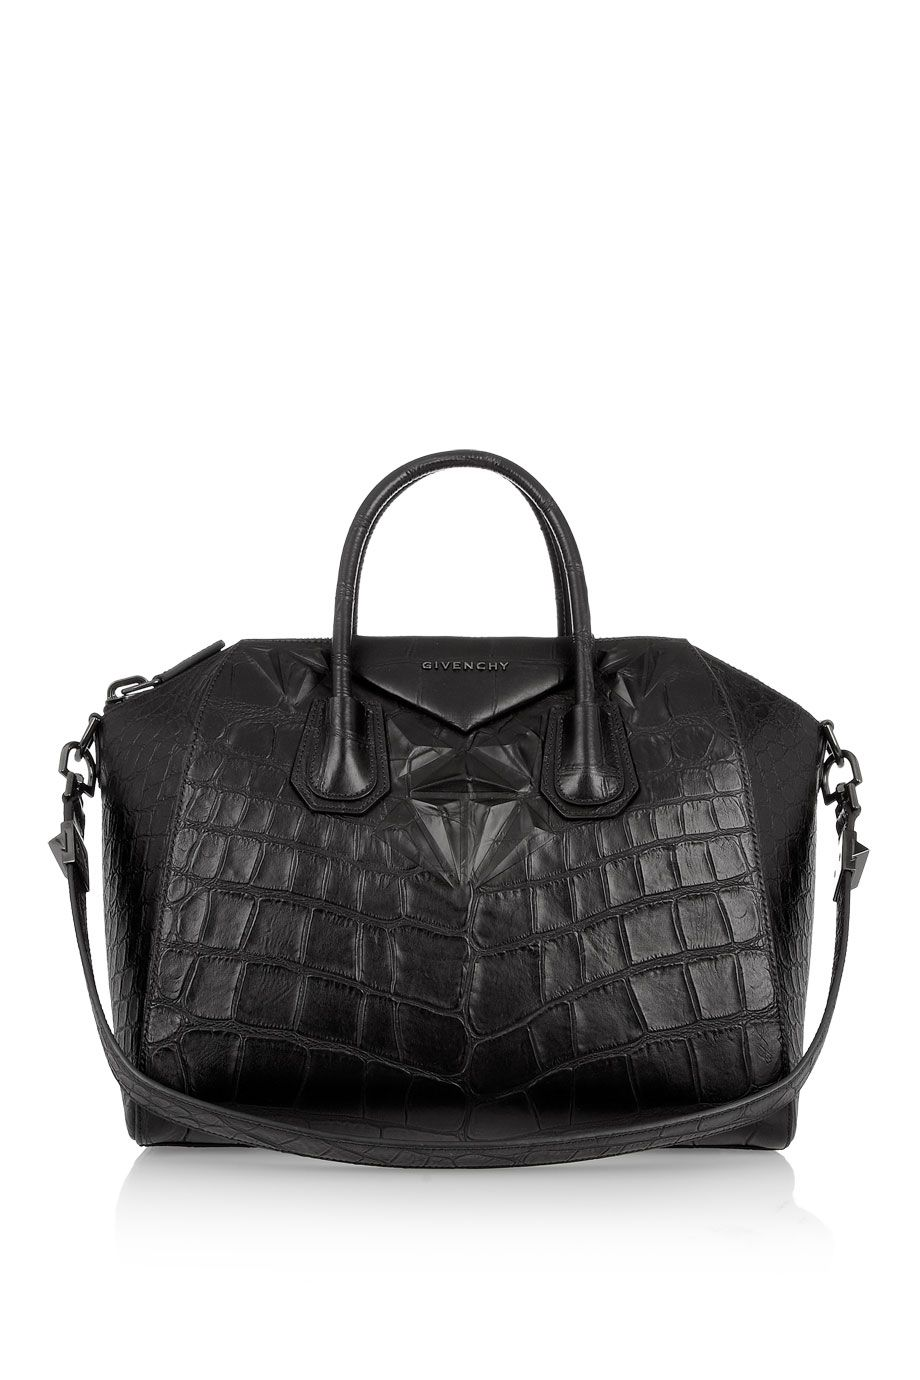 5c55025272 Givenchy | Medium Antigona bag in black crocodile-style leather |  NET-A-PORTER.COM